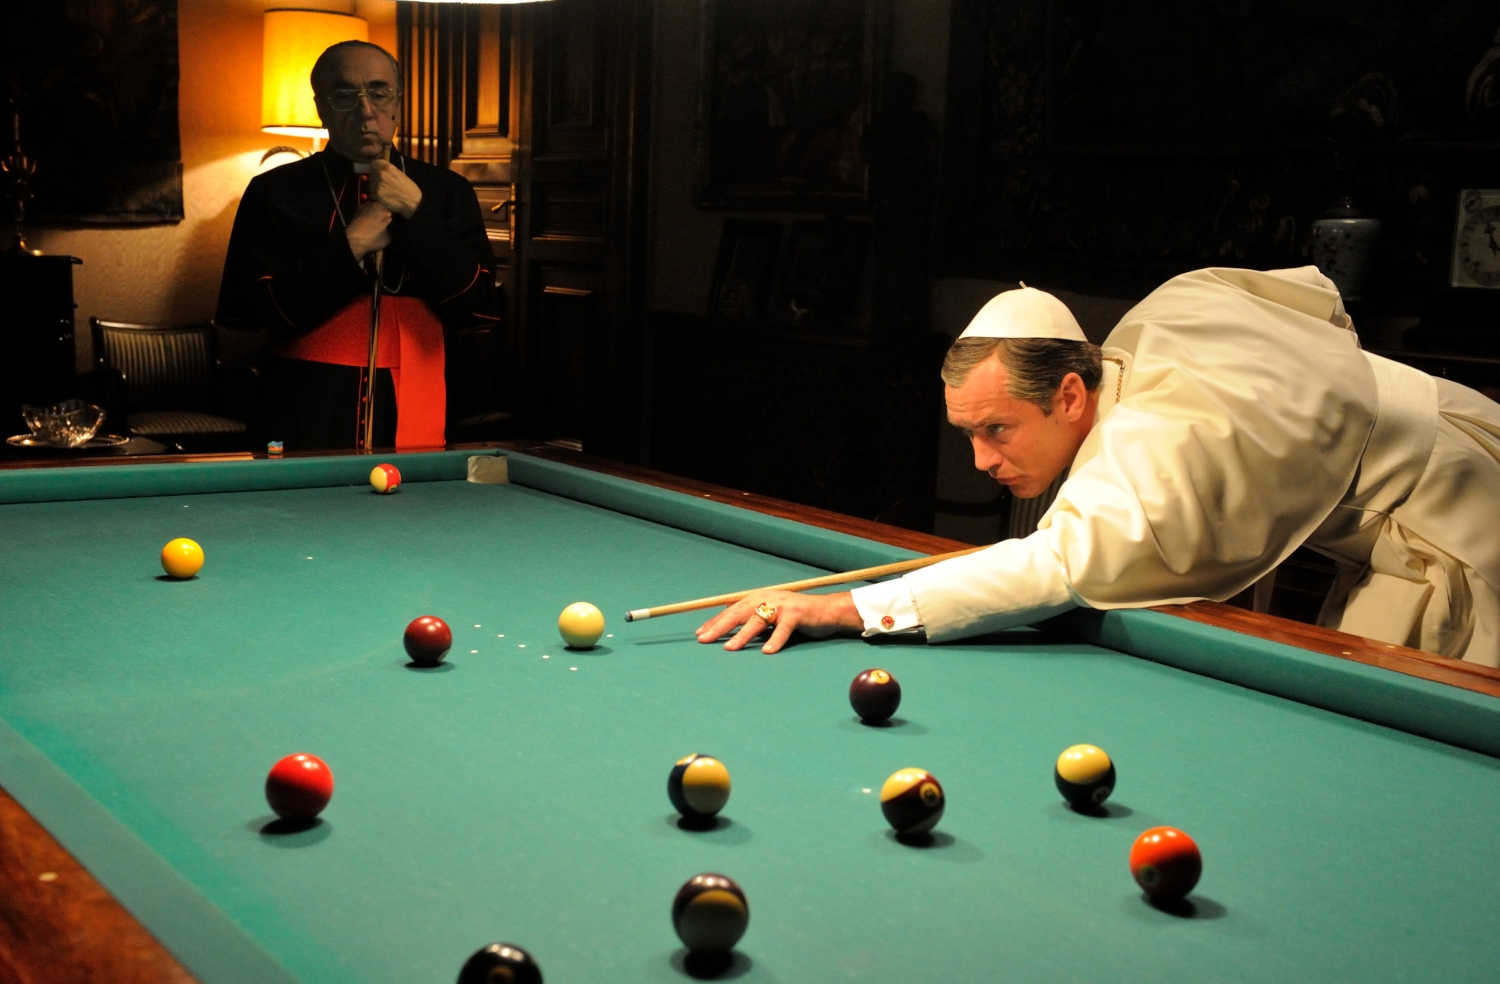 The Prime minister of the Vatican and the young pope having a interesting conversation over a game of pool